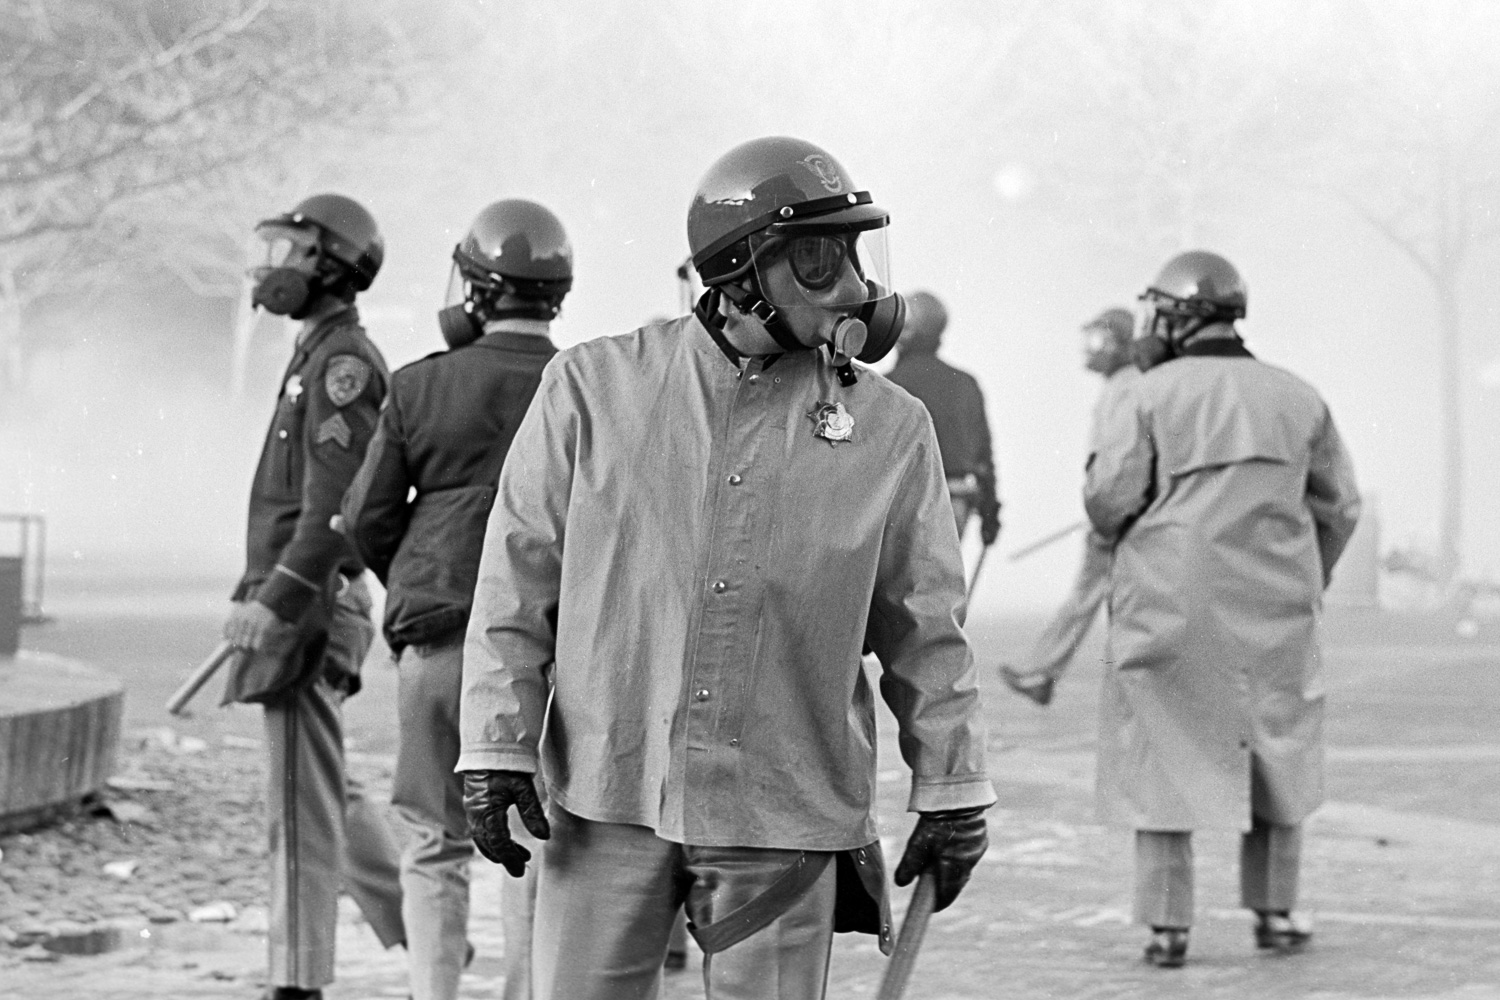 Berkeley police learned it's hard to catch who you're chasing after you've pumped tear gas everywhere.